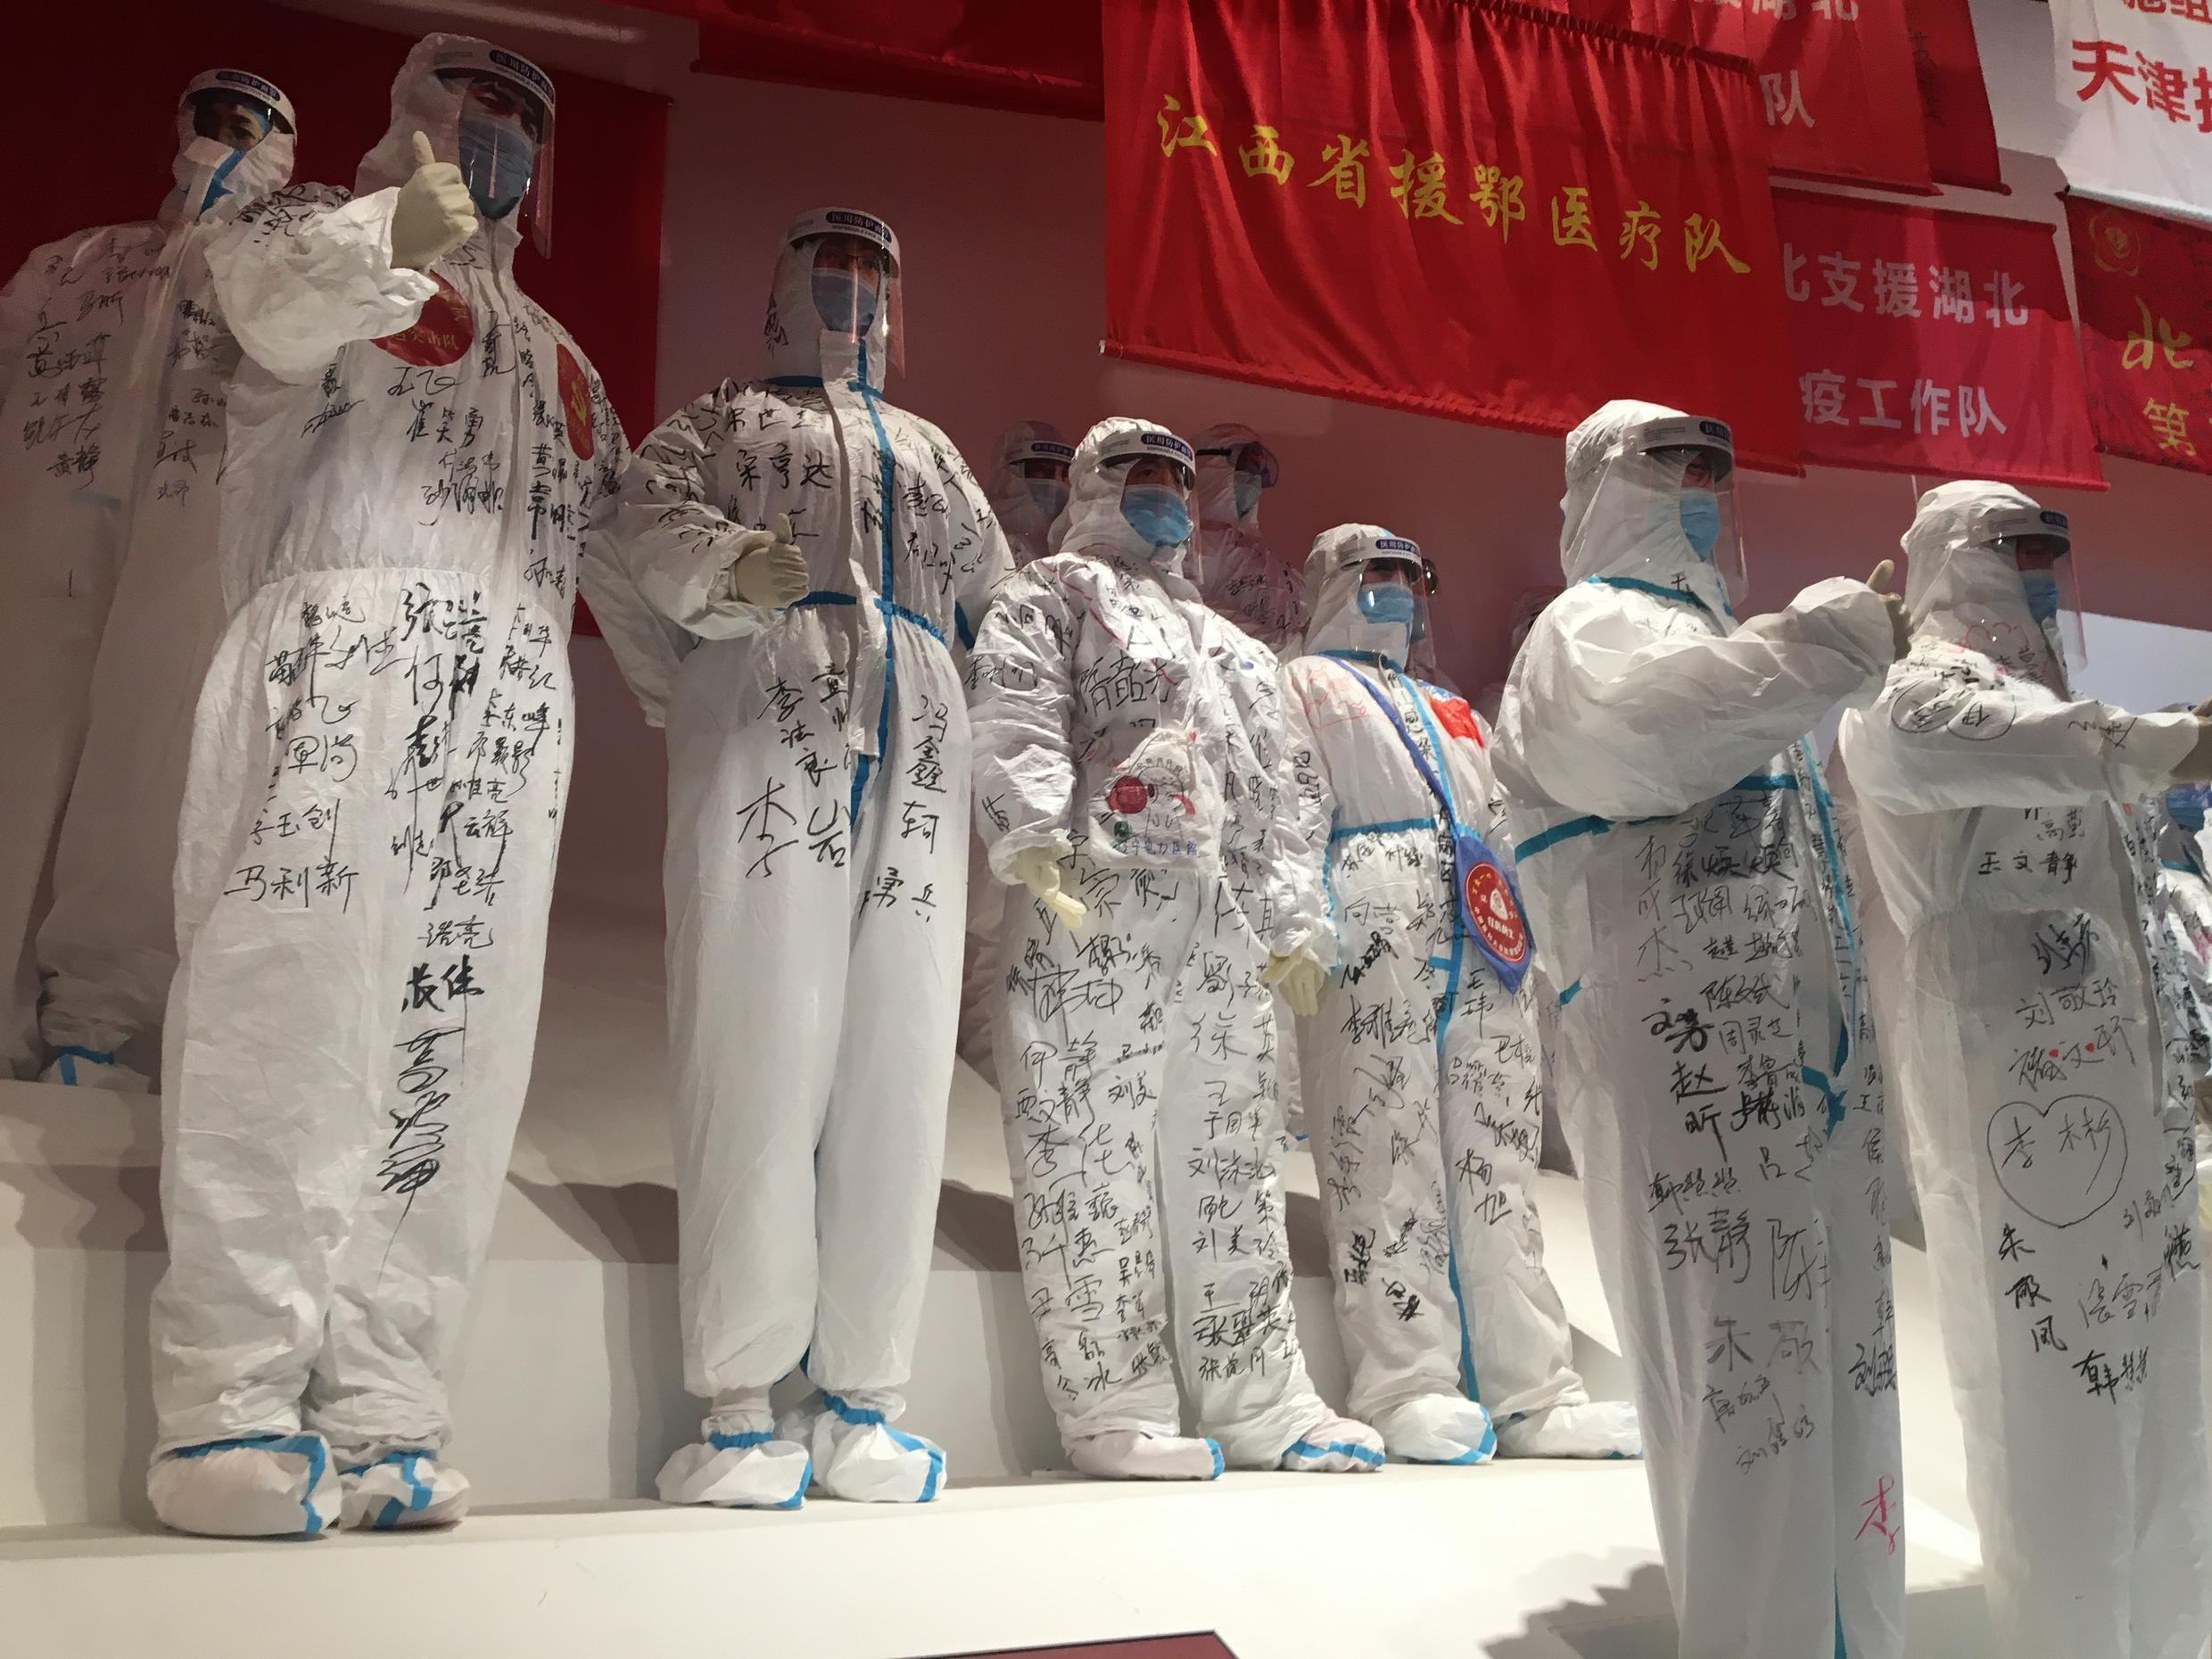 Covid-19 exhibition in Wuhan features life-size statues of health workers in full protective gear.